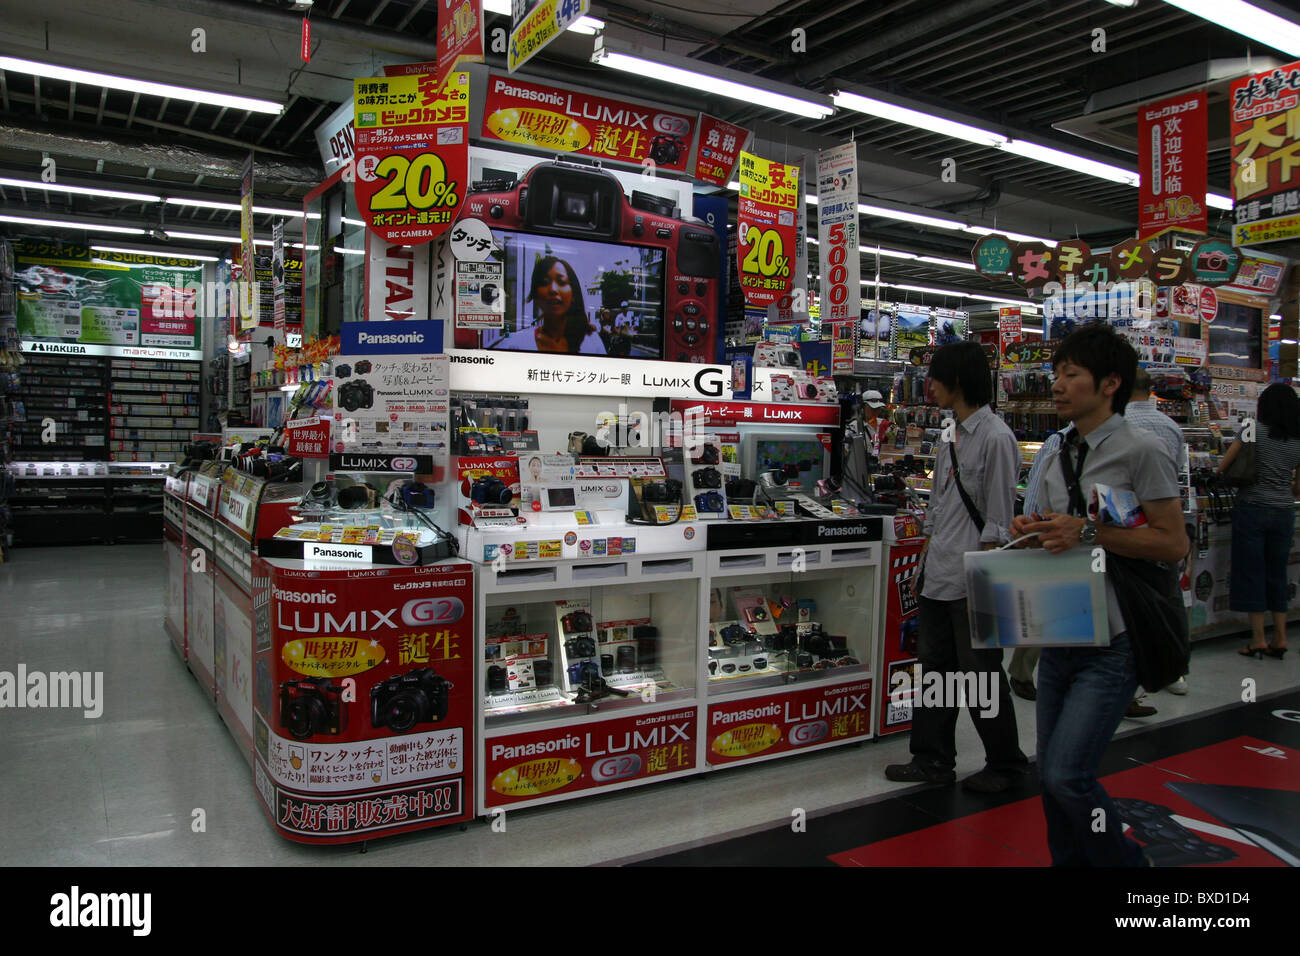 Lumix digital cameras for sale in Bic Camera store in Tokyo Japan 2010 - Stock Image